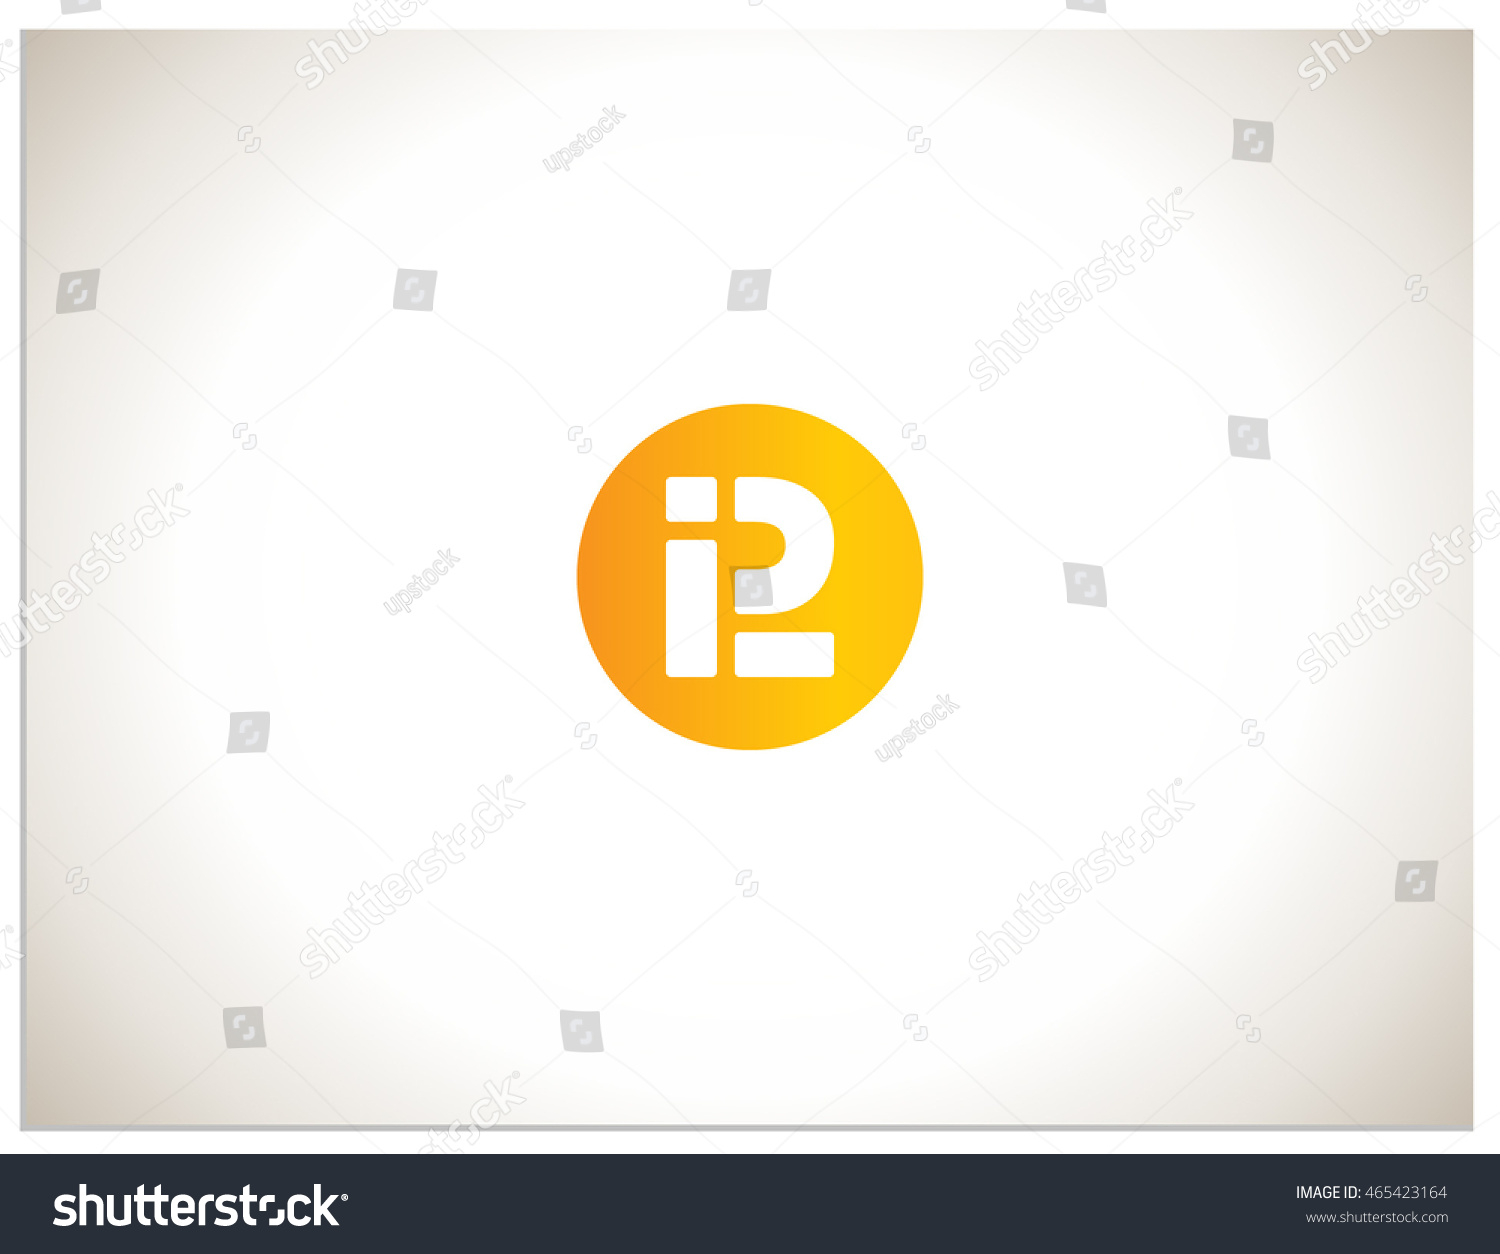 Text logo which consists abbreviations p stock vector 465423164 text logo which consists of abbreviations i p and l placed in a circle biocorpaavc